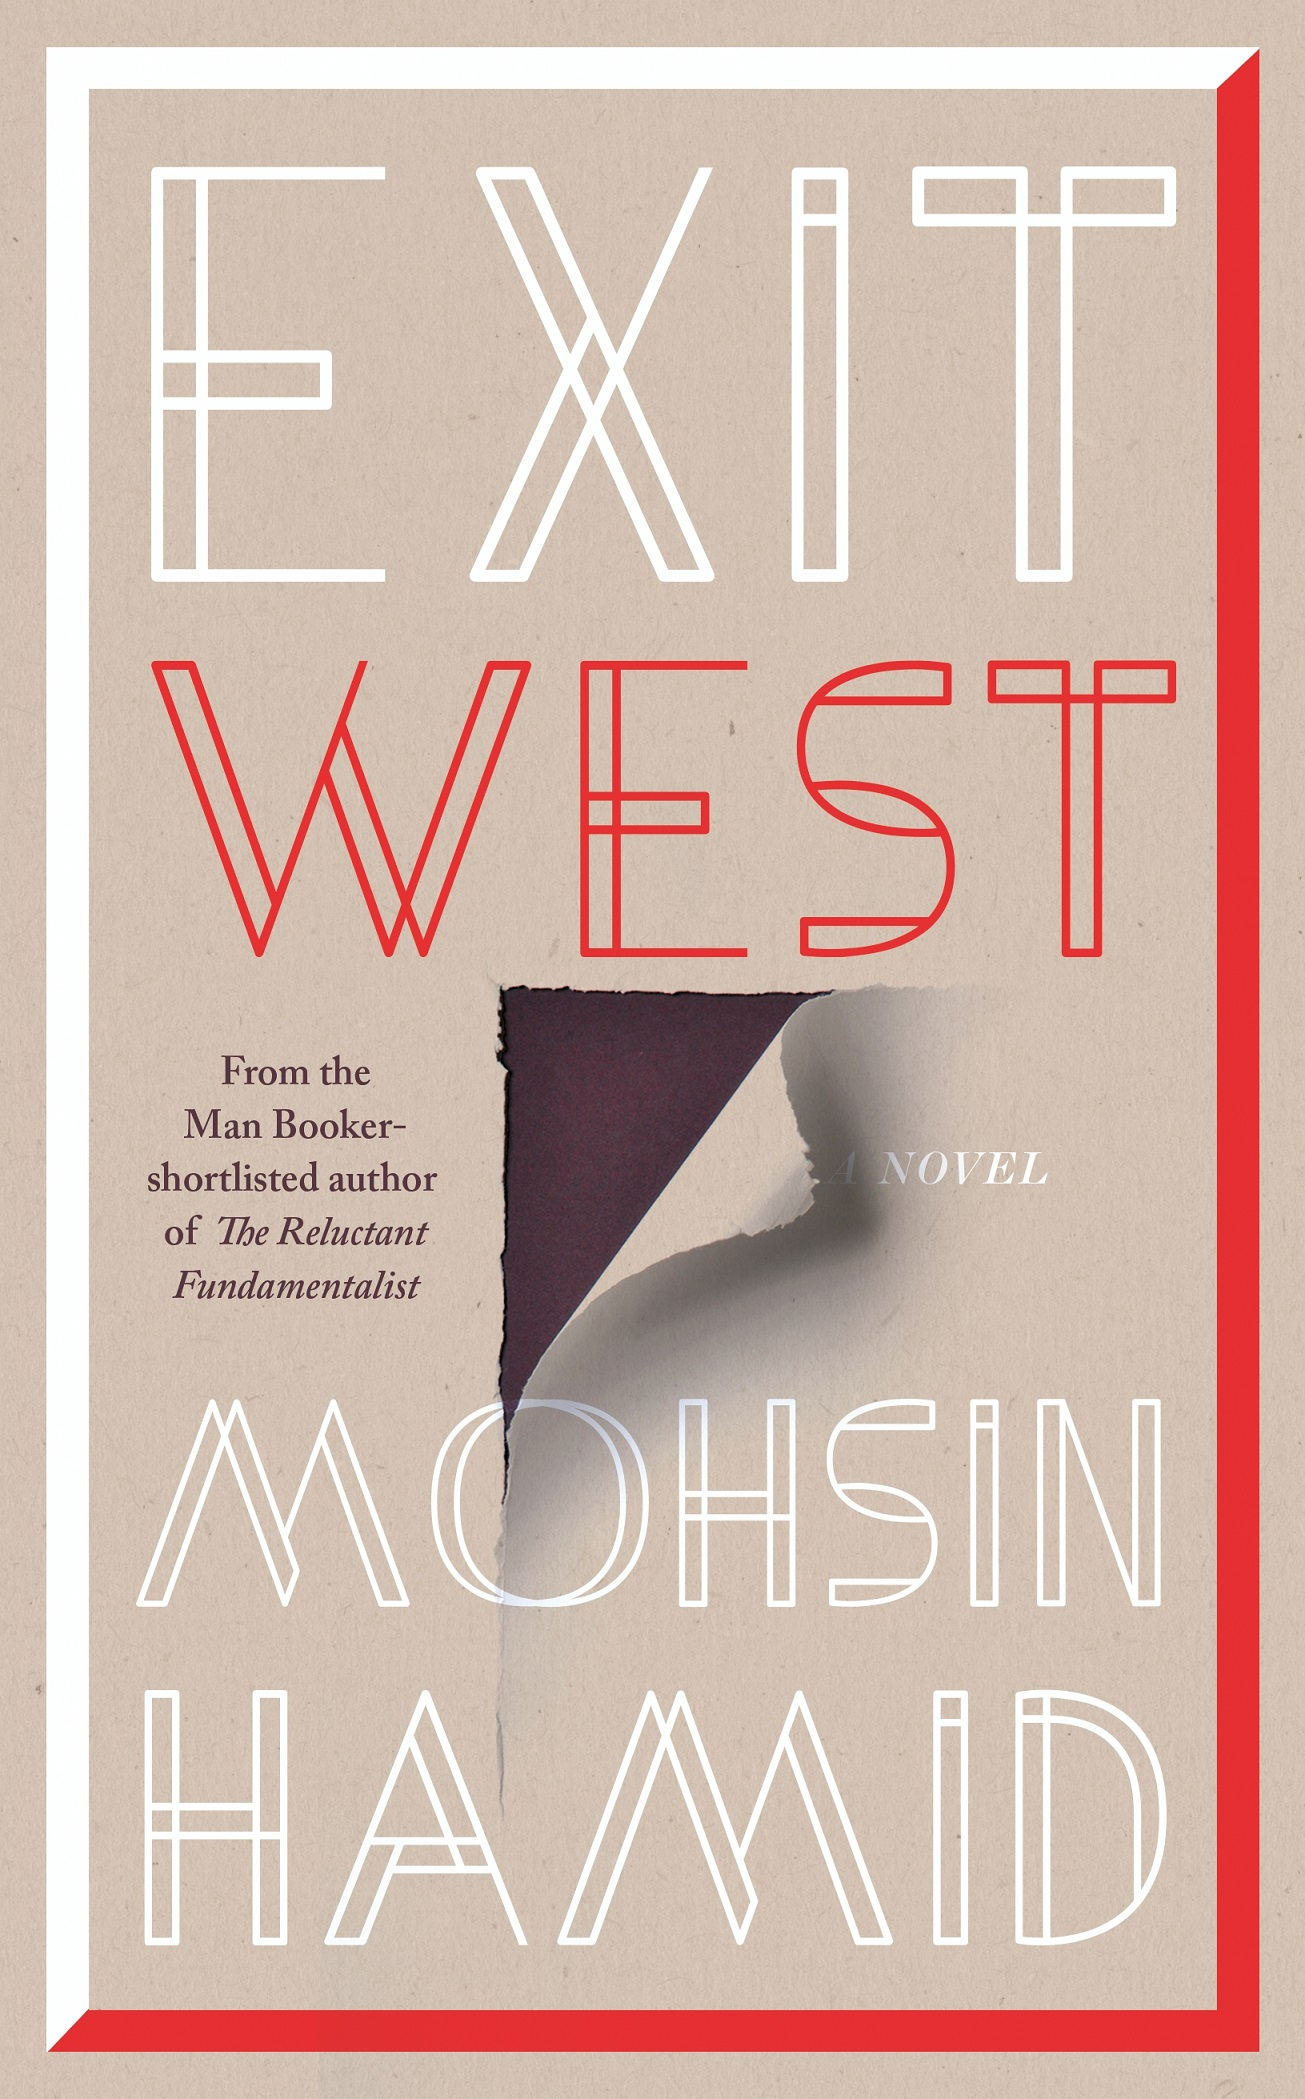 Mohsin hamid   exit west